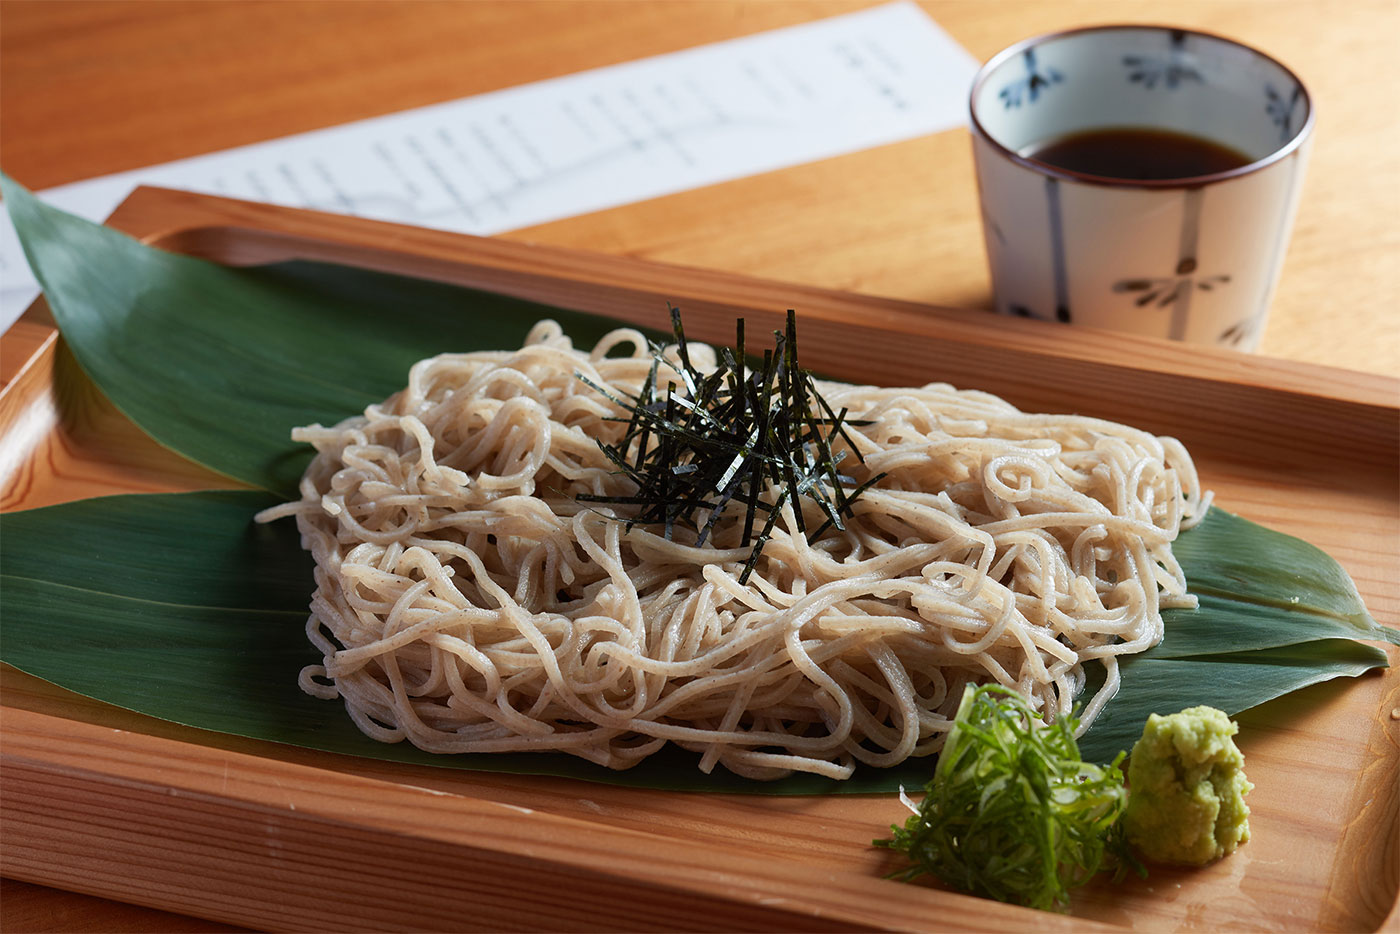 Cultivated In Tozawa Village Yamagata Prefecture And The Noodles Are Made Using An Original Blend That Was Developed Solely For Shunbou Restaurant